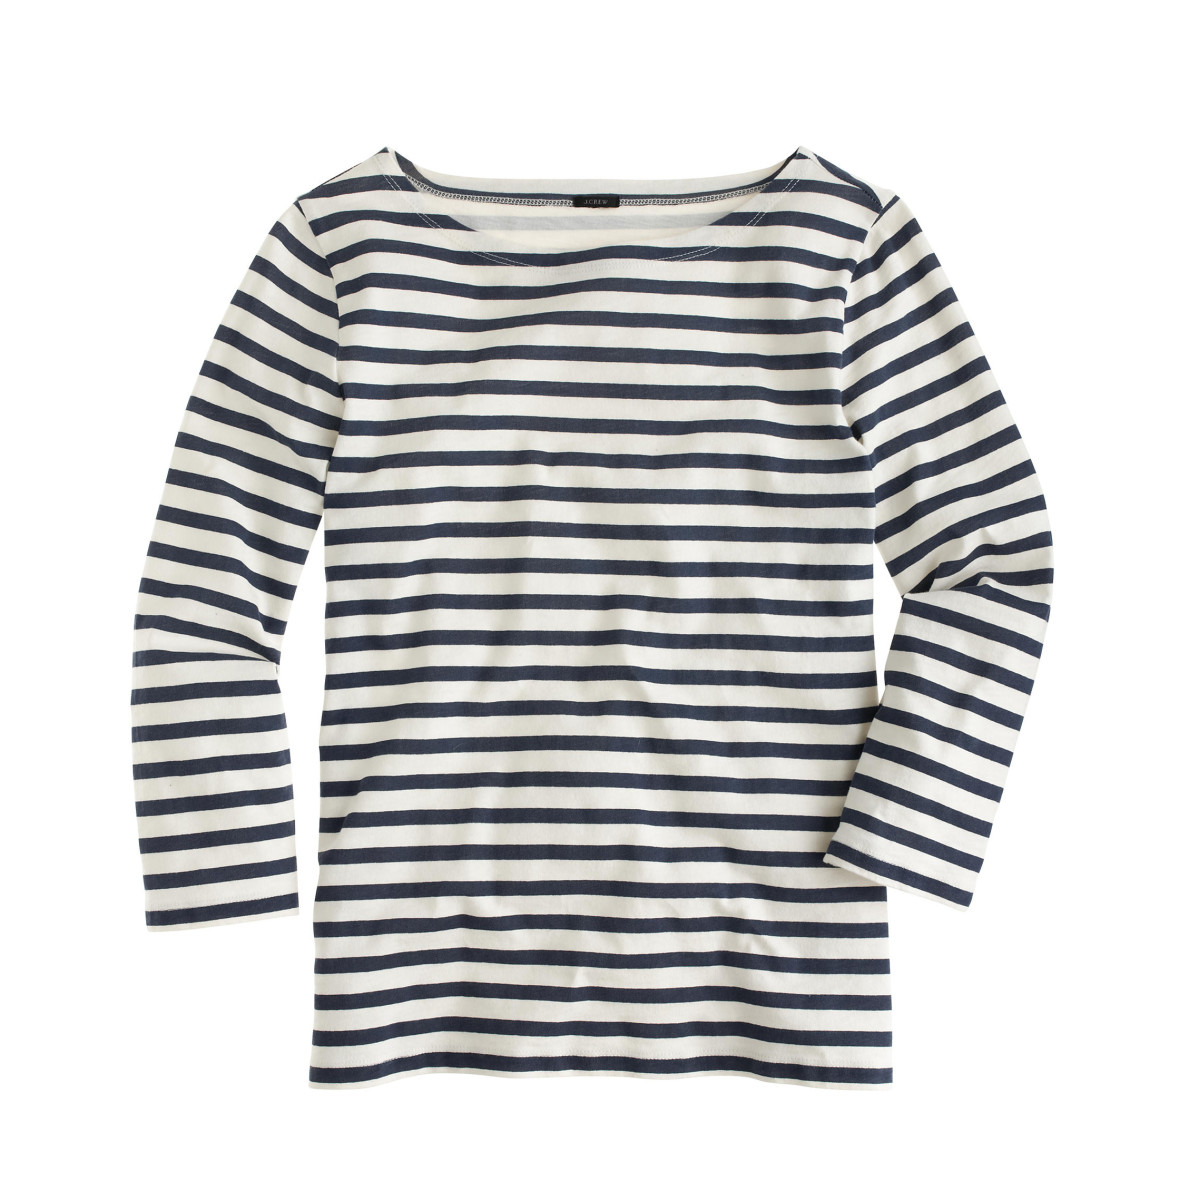 jcrew striped tee.jpg